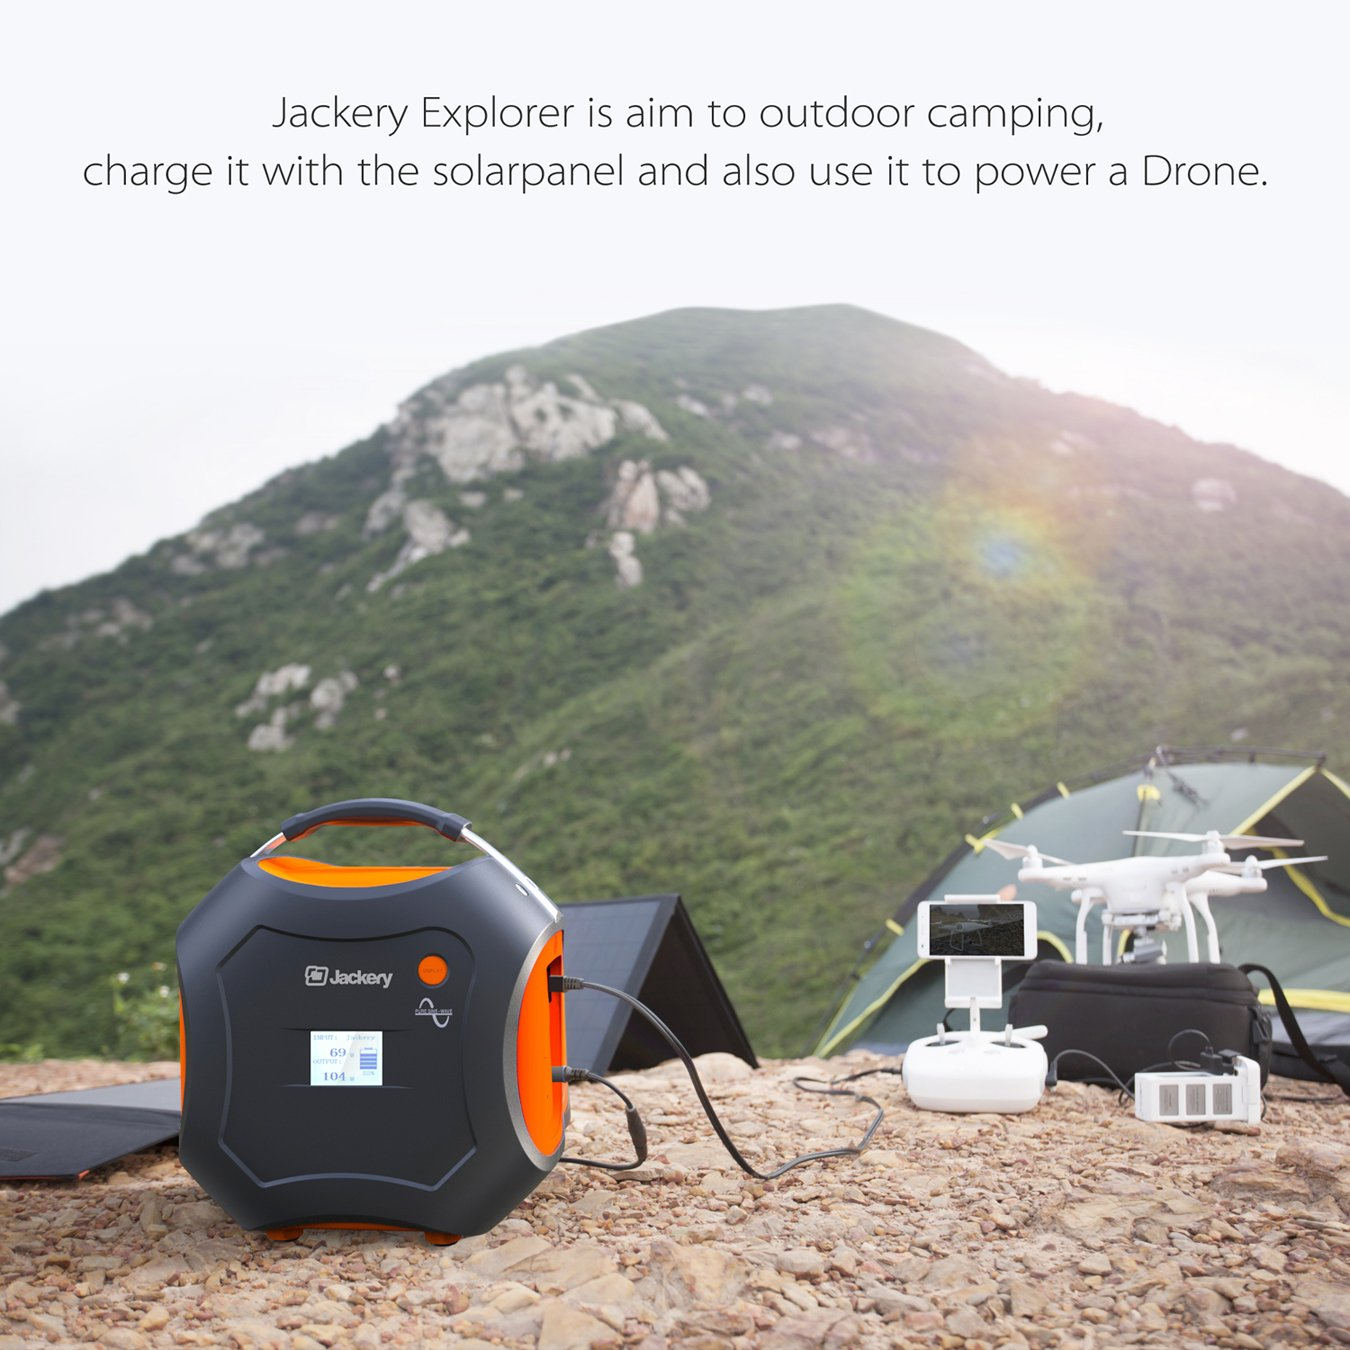 500Wh Portable Generator, Jackery Explorer / Power Pro Rechargeable Lithium Battery Pack Quiet Generator with 110V / 300W AC Outlet, 12V Car, USB Output Clean Off-grid Emergency Power Pack for Camping by Jackery (Image #8)